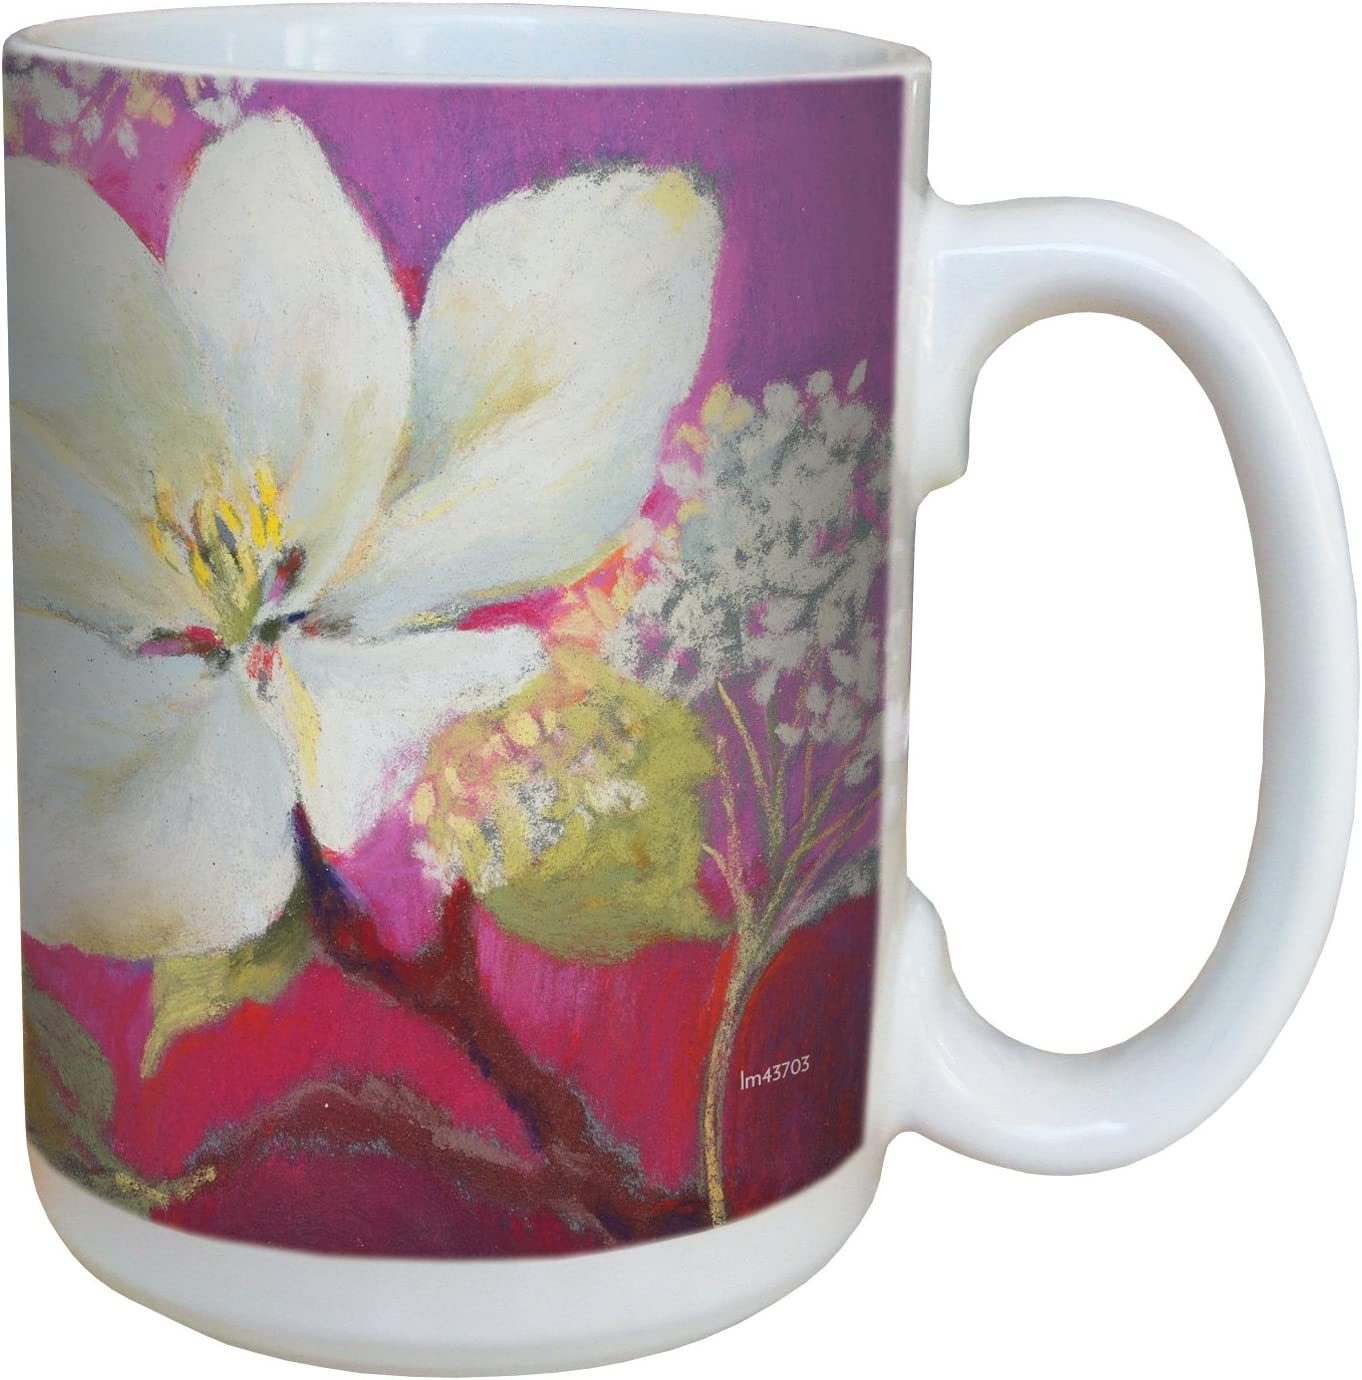 Tree-Free Greetings lm43703 Apple Blossom by Nel Whatmore Ceramic Mug, 15-Ounce